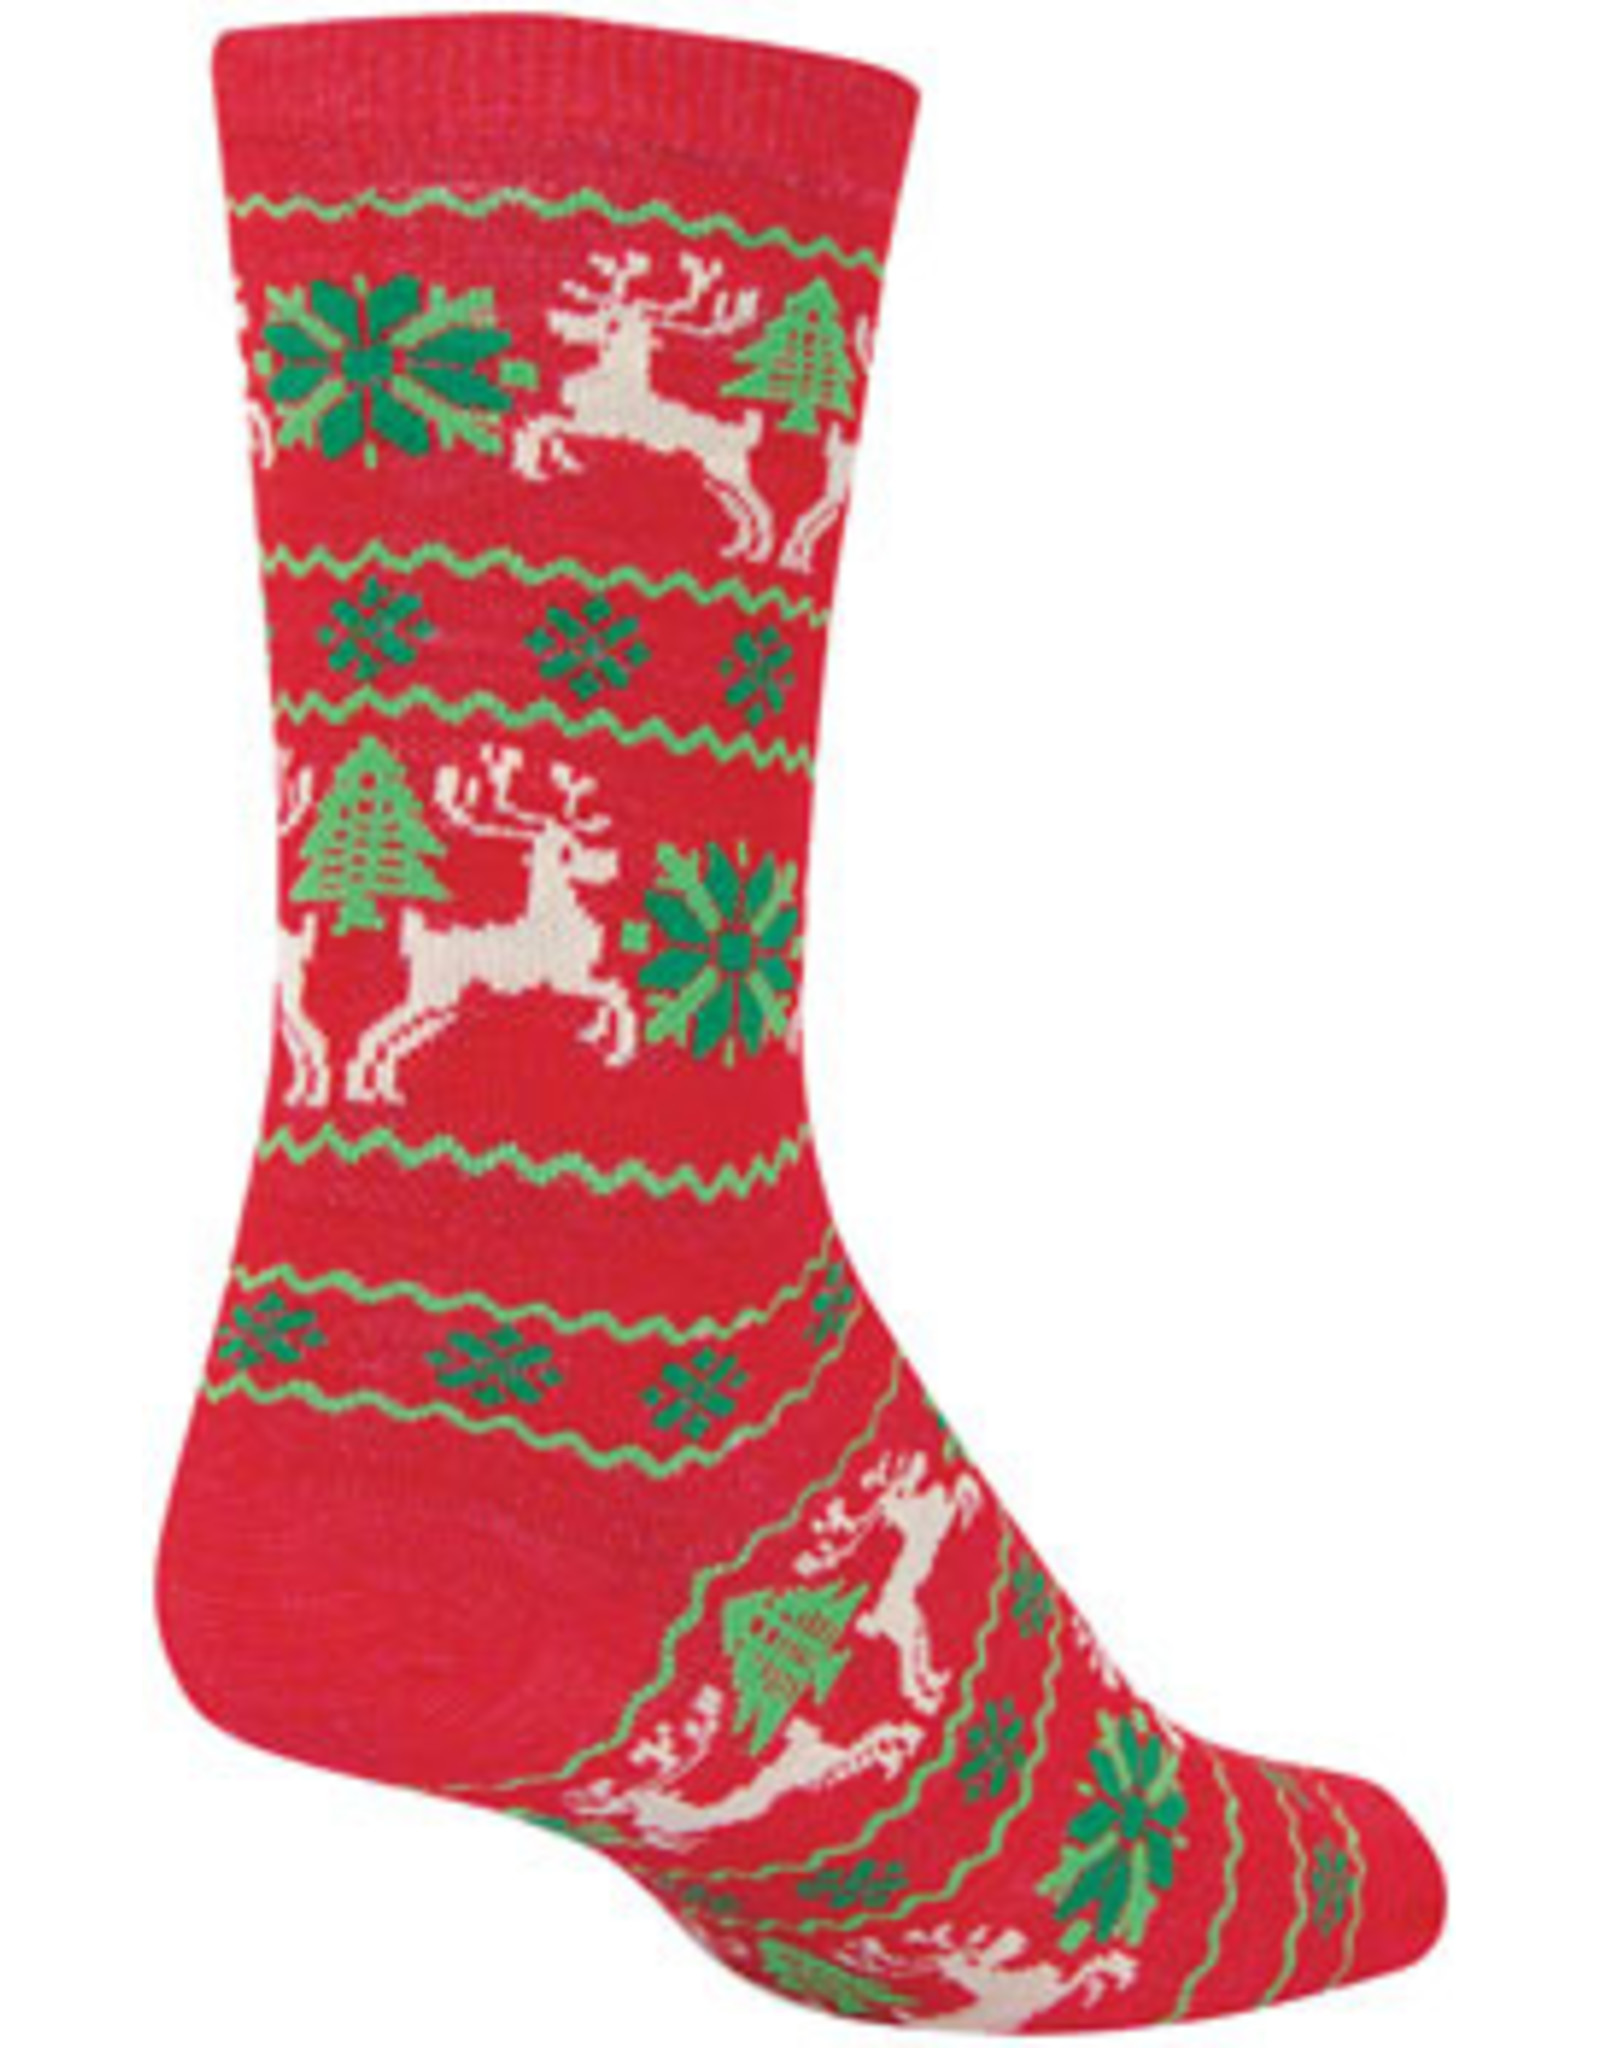 SockGuy Wool Ugly Sweater Red Crew Socks - 6 inch, Red/Green